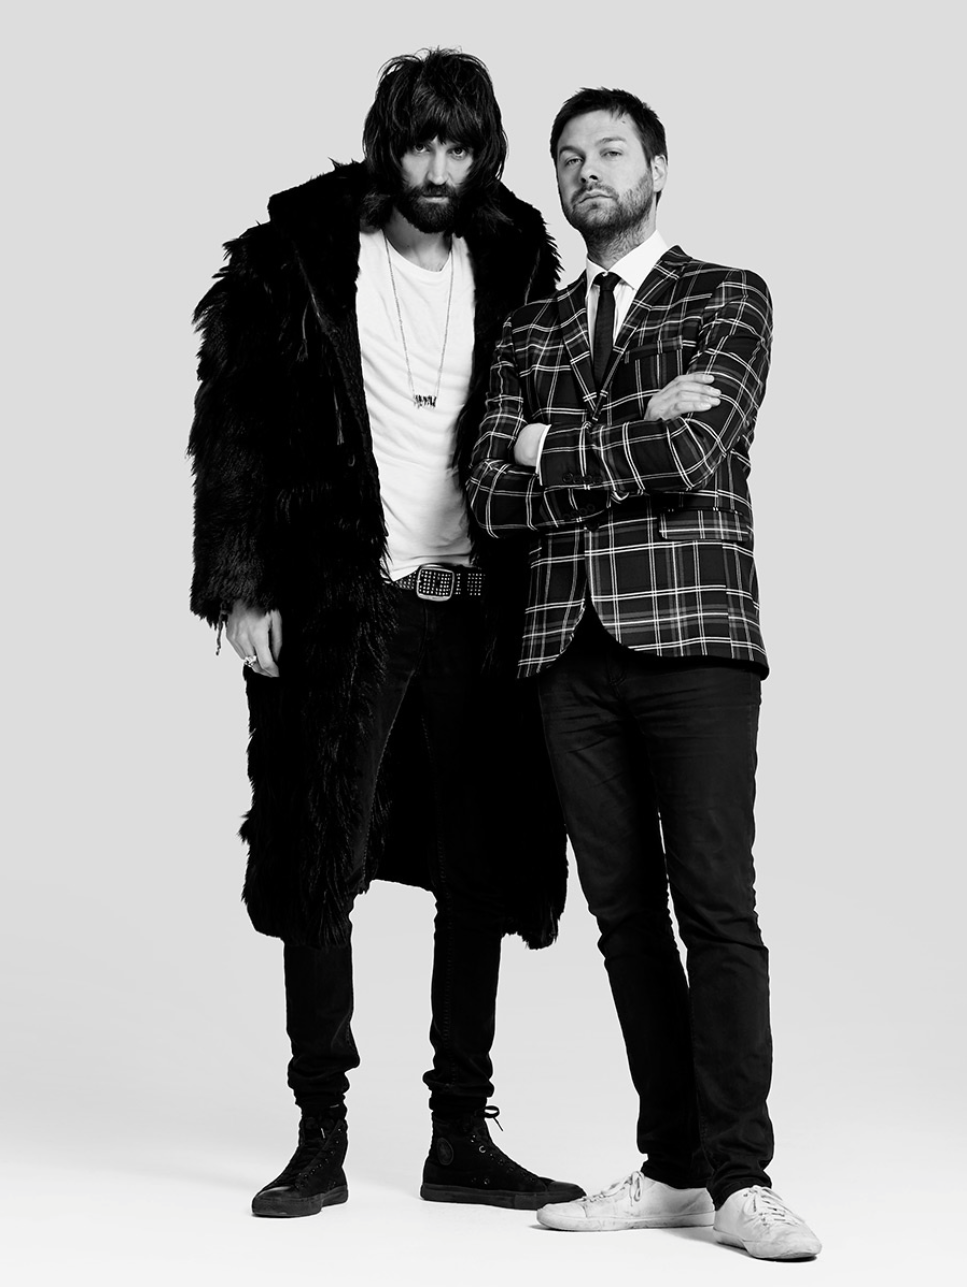 Image by Neil Bedford, all rights reserved. Tom & Sergio, Kasabian, 2014.